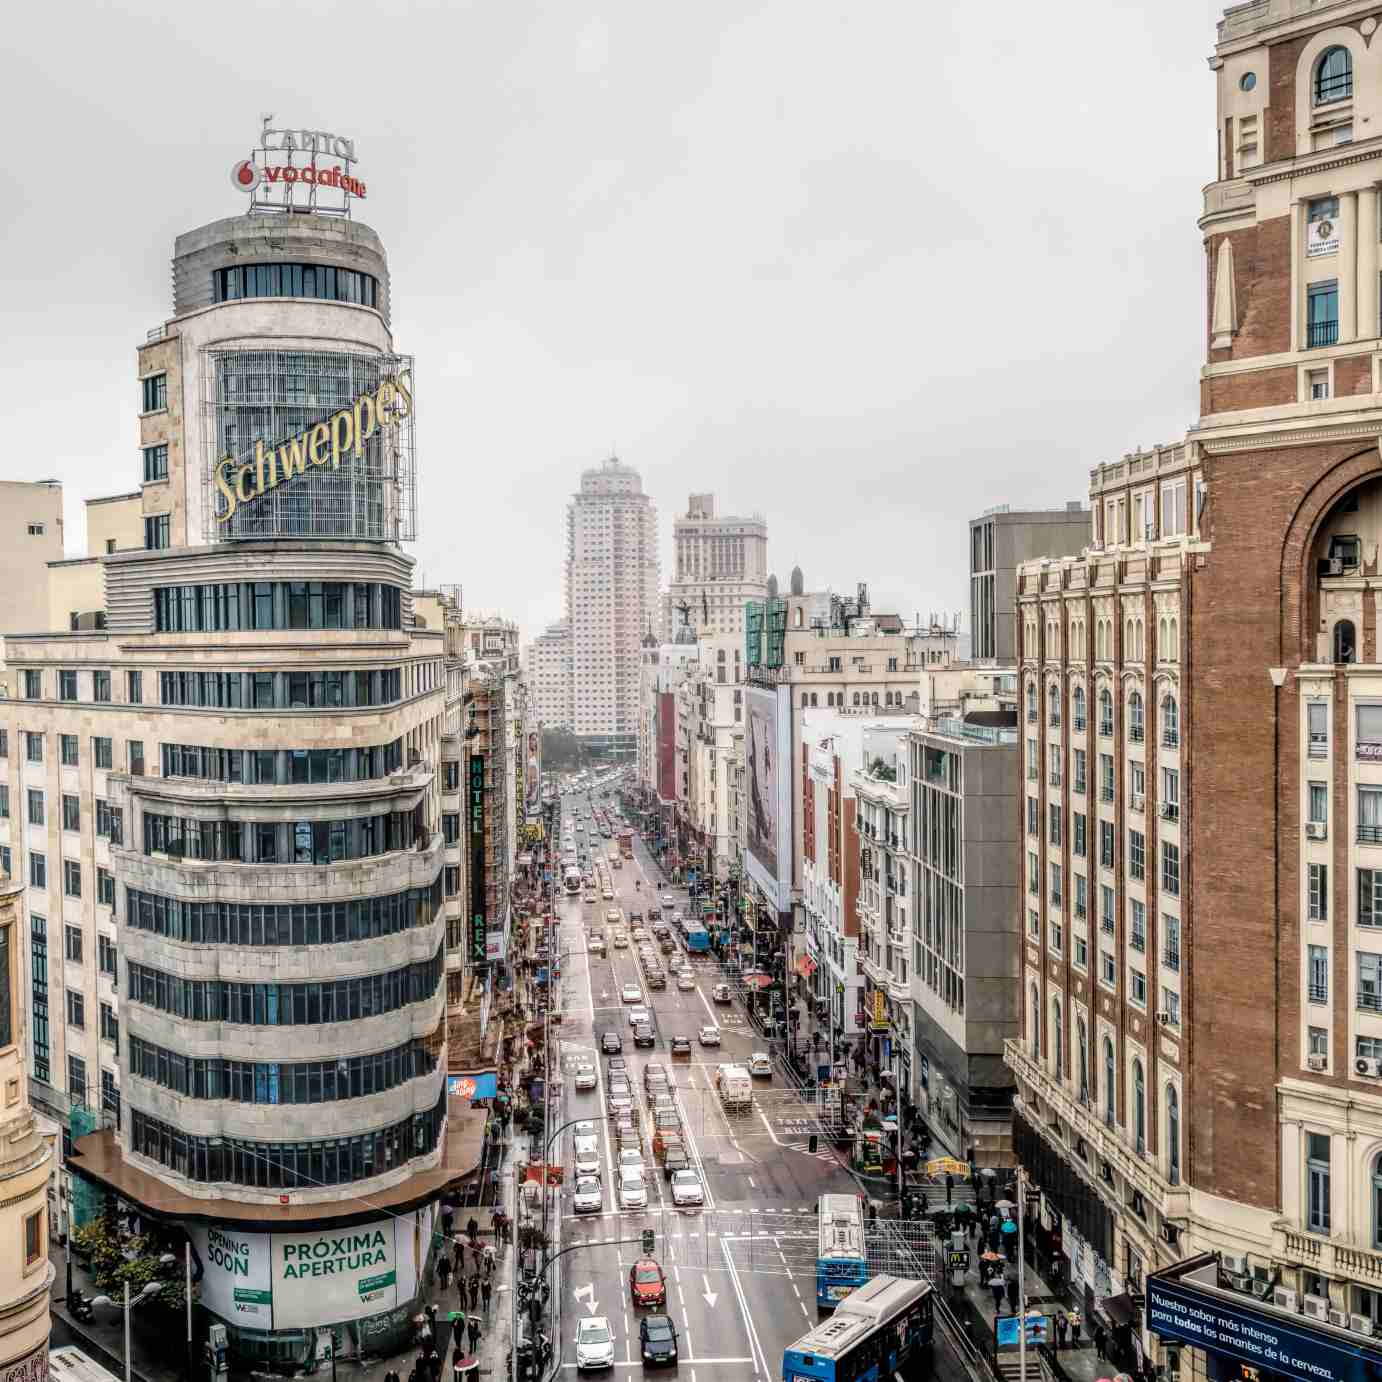 A list of activities around Sol and Gran Via in Madrid